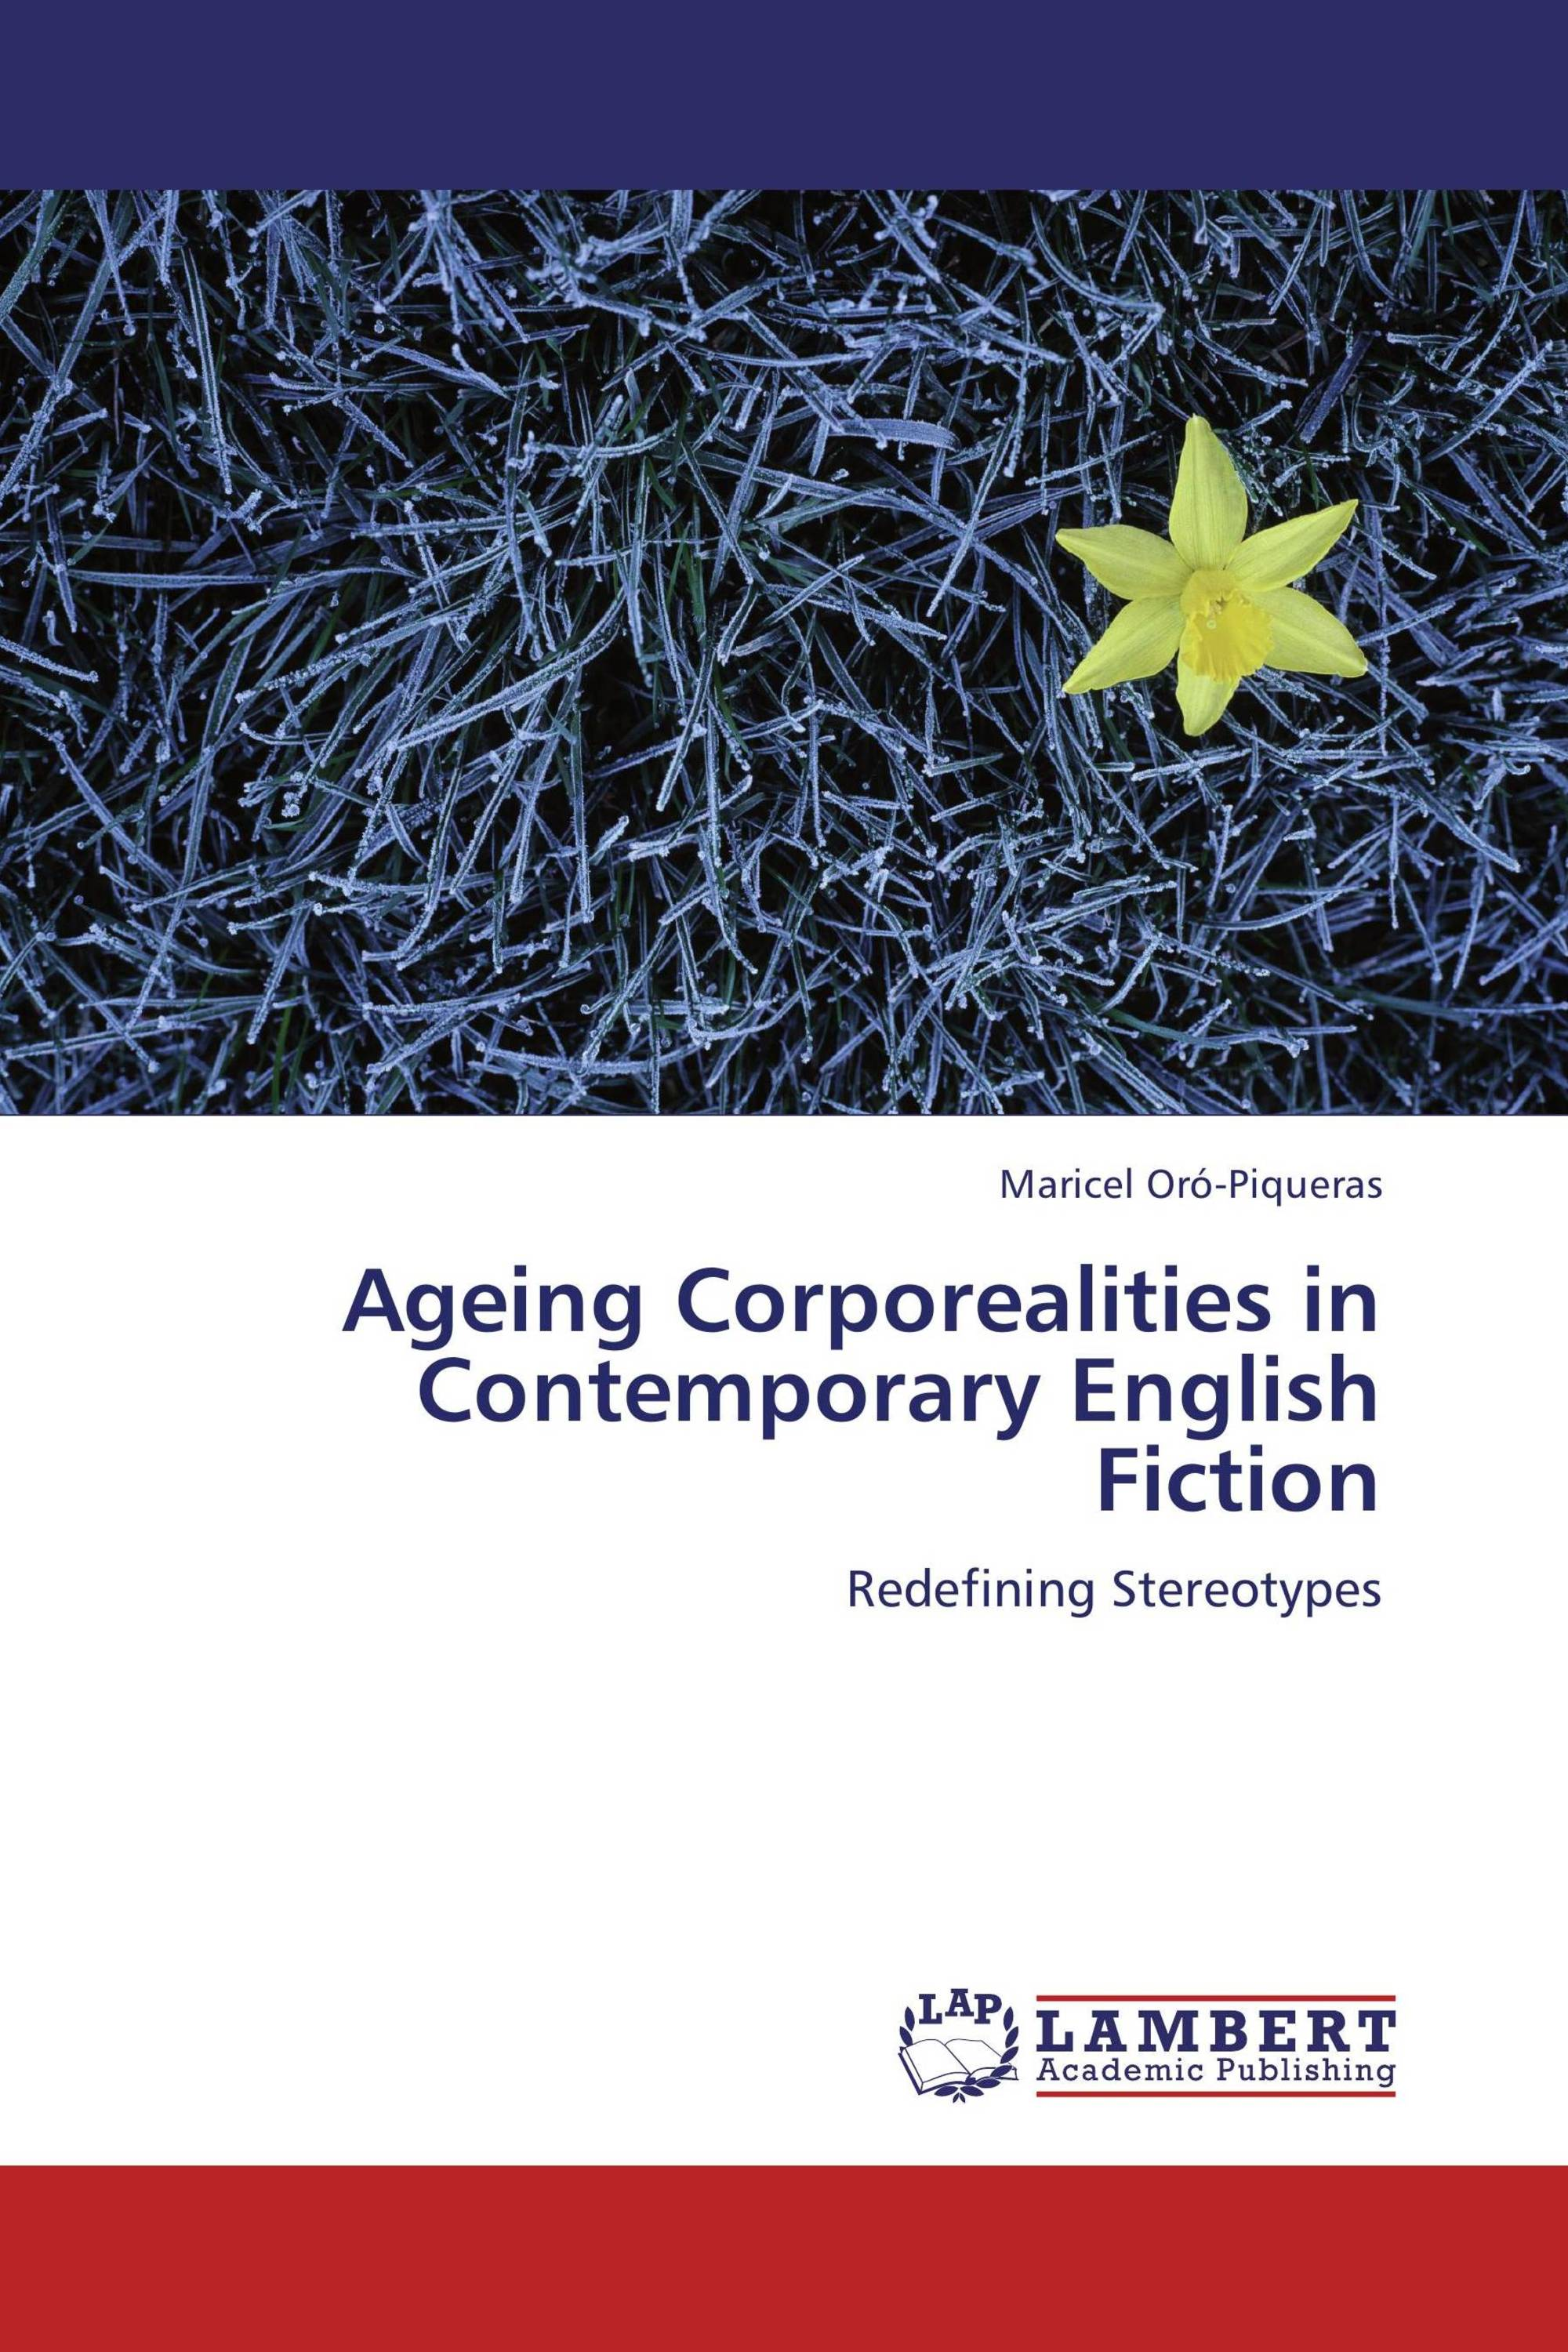 Ageing Corporealities in Contemporary English Fiction